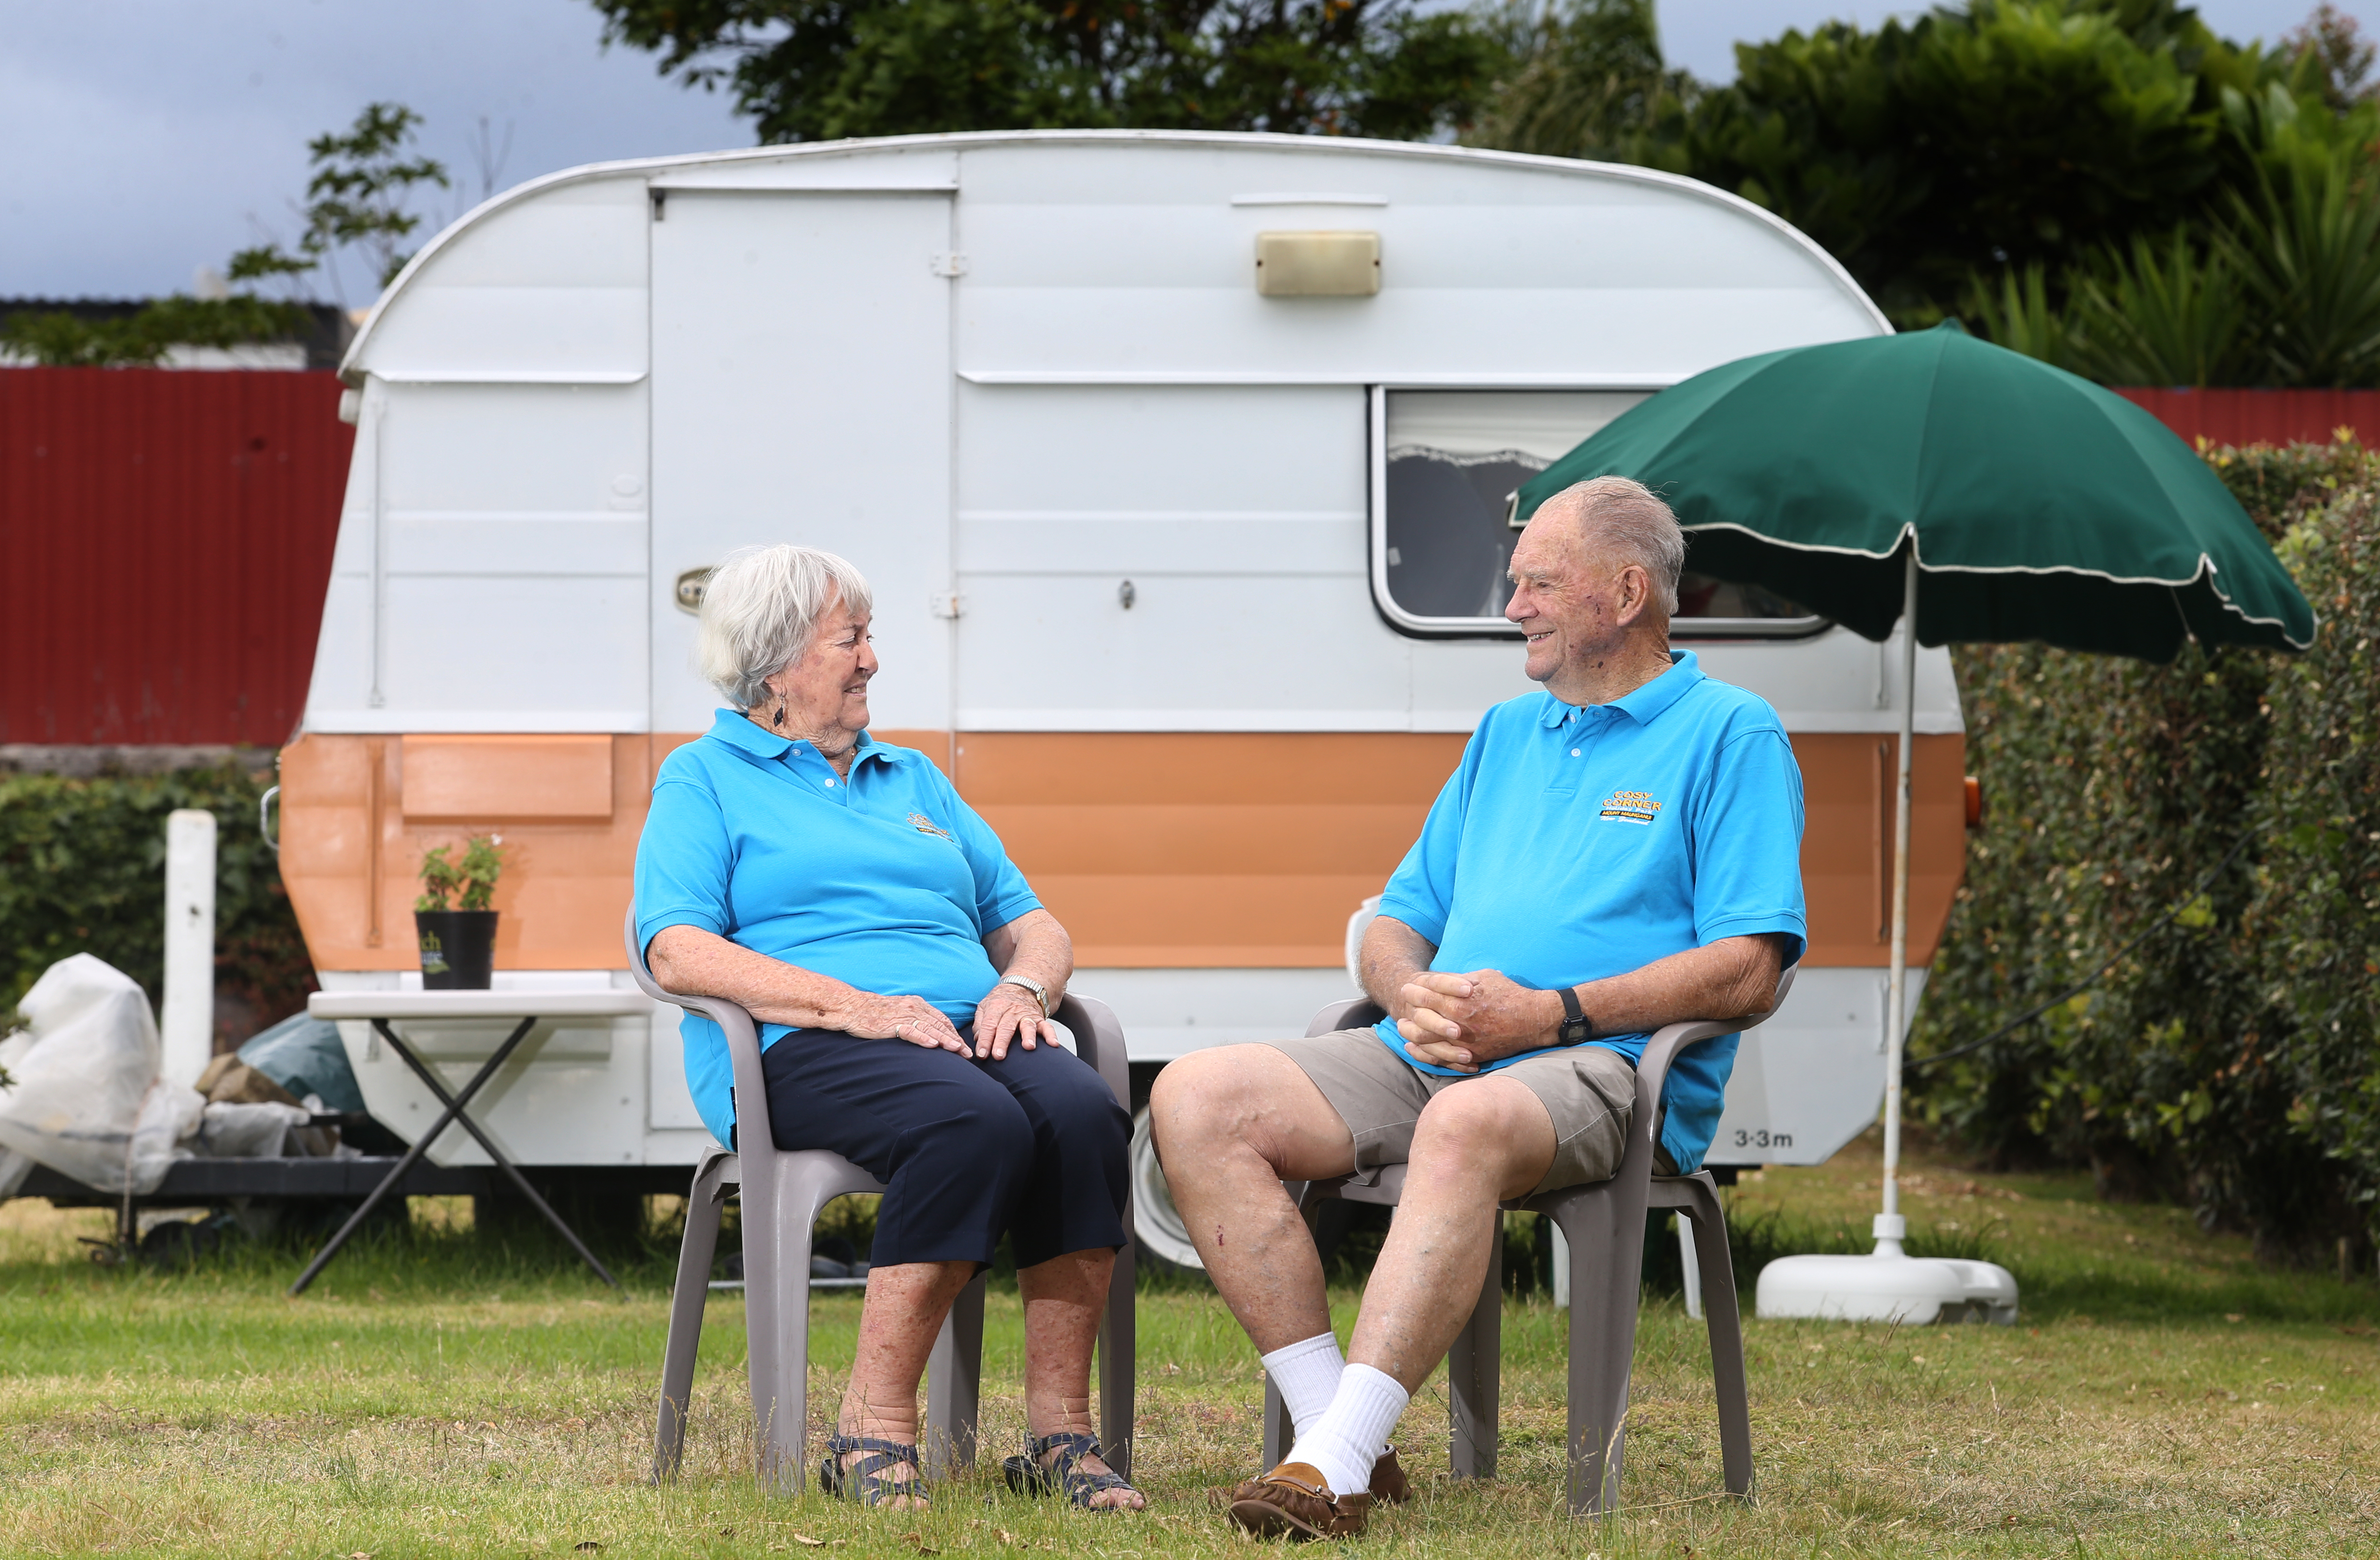 The Big Read: Bay campgrounds resist the lure of big money